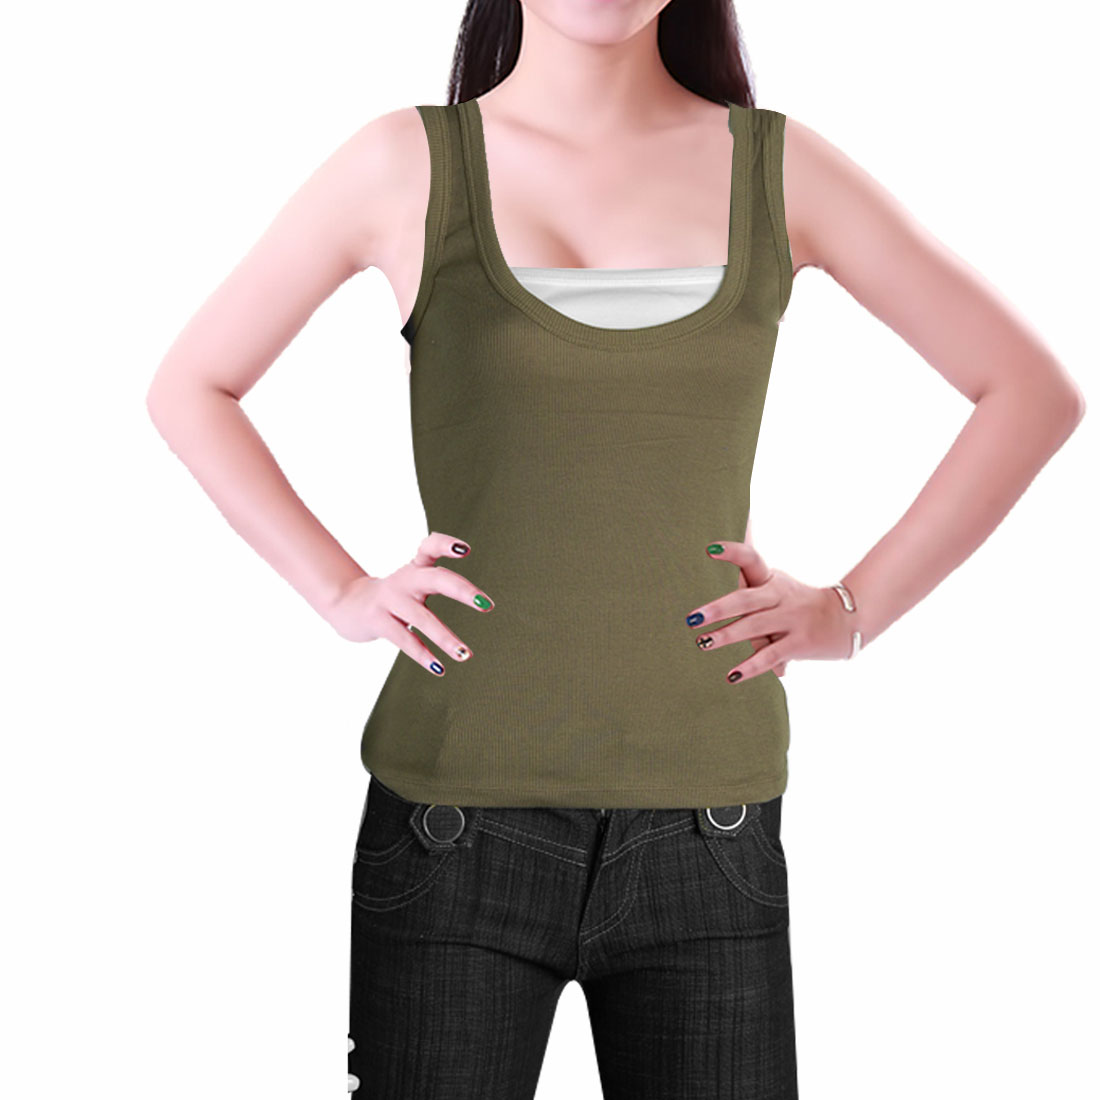 Ladies Light Brown White Sleeveless Shirt 2-Fer Tank Top XS